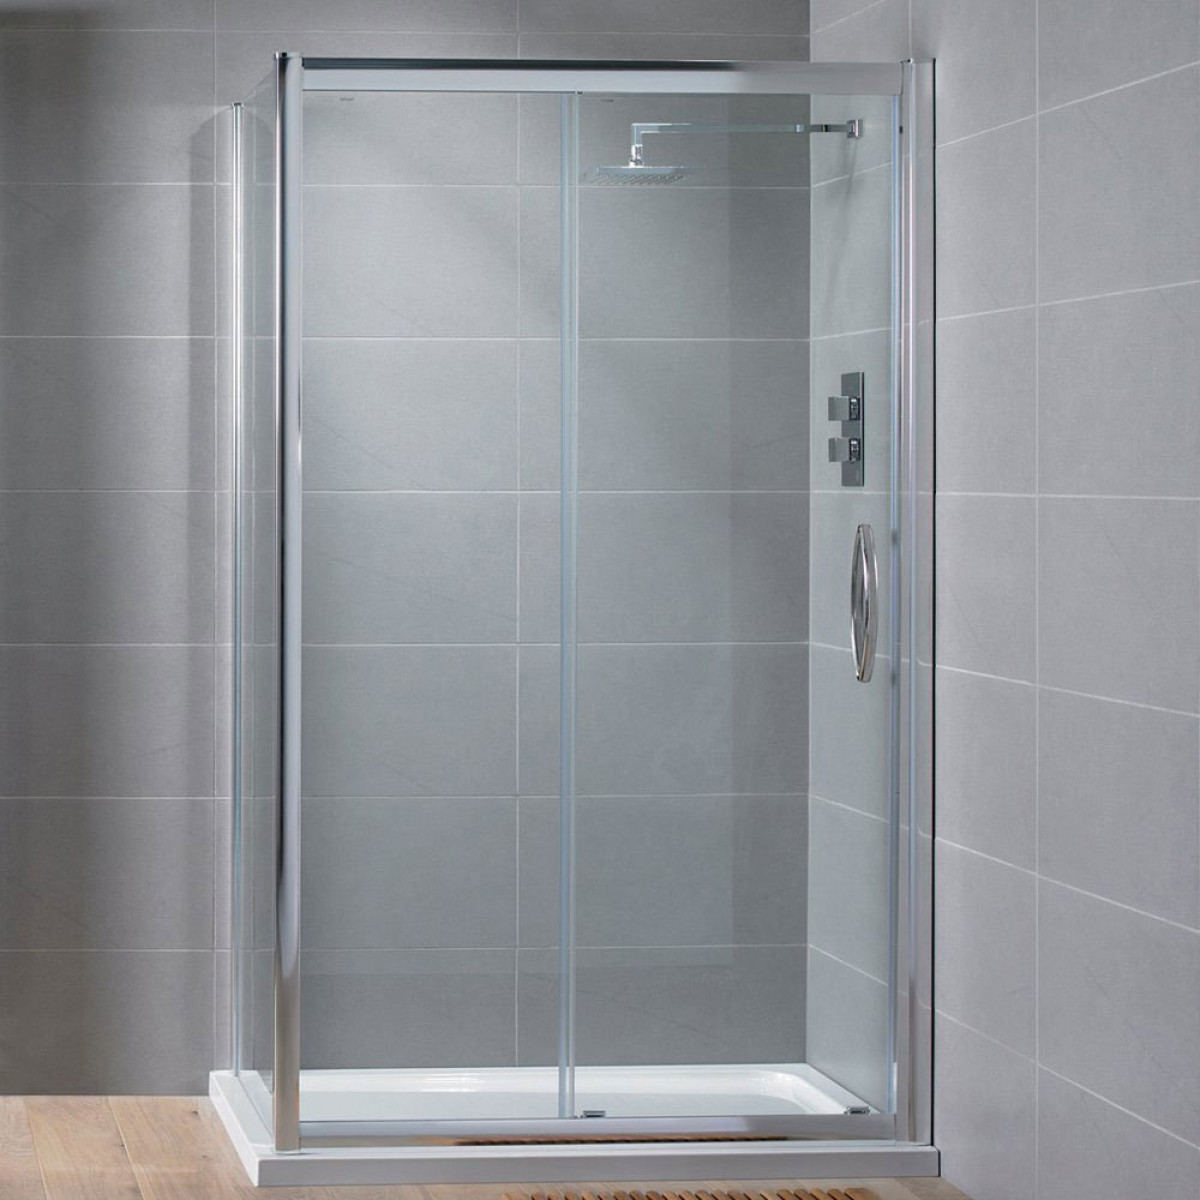 Aquadart venturi8 1200mm sliding shower door for 1200mm shower door sliding